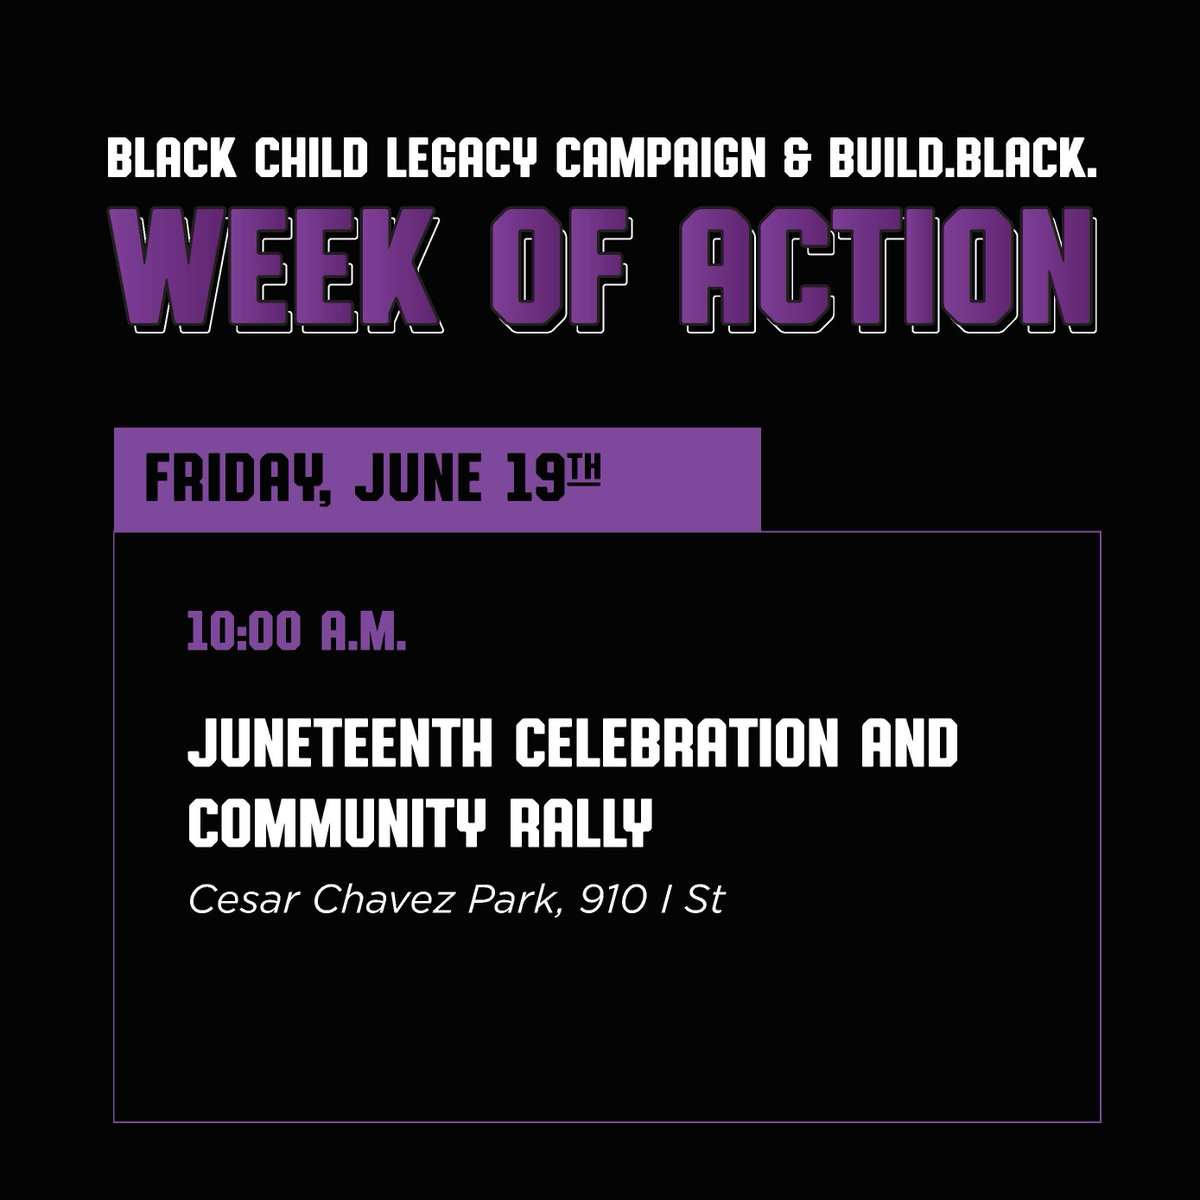 Tomorrow, June 19 ( #Juneteenth ) BCLC will be hosting a celebration and community rally at Cesar Chavez Park from 10am - 11:30am. This rally will be a demonstration to #StoptheViolence, #ReImagineJustice, #InvestInCommunity, and to support and liberate #BlackLivesMatter. https://t.co/xLiMp4AeXK